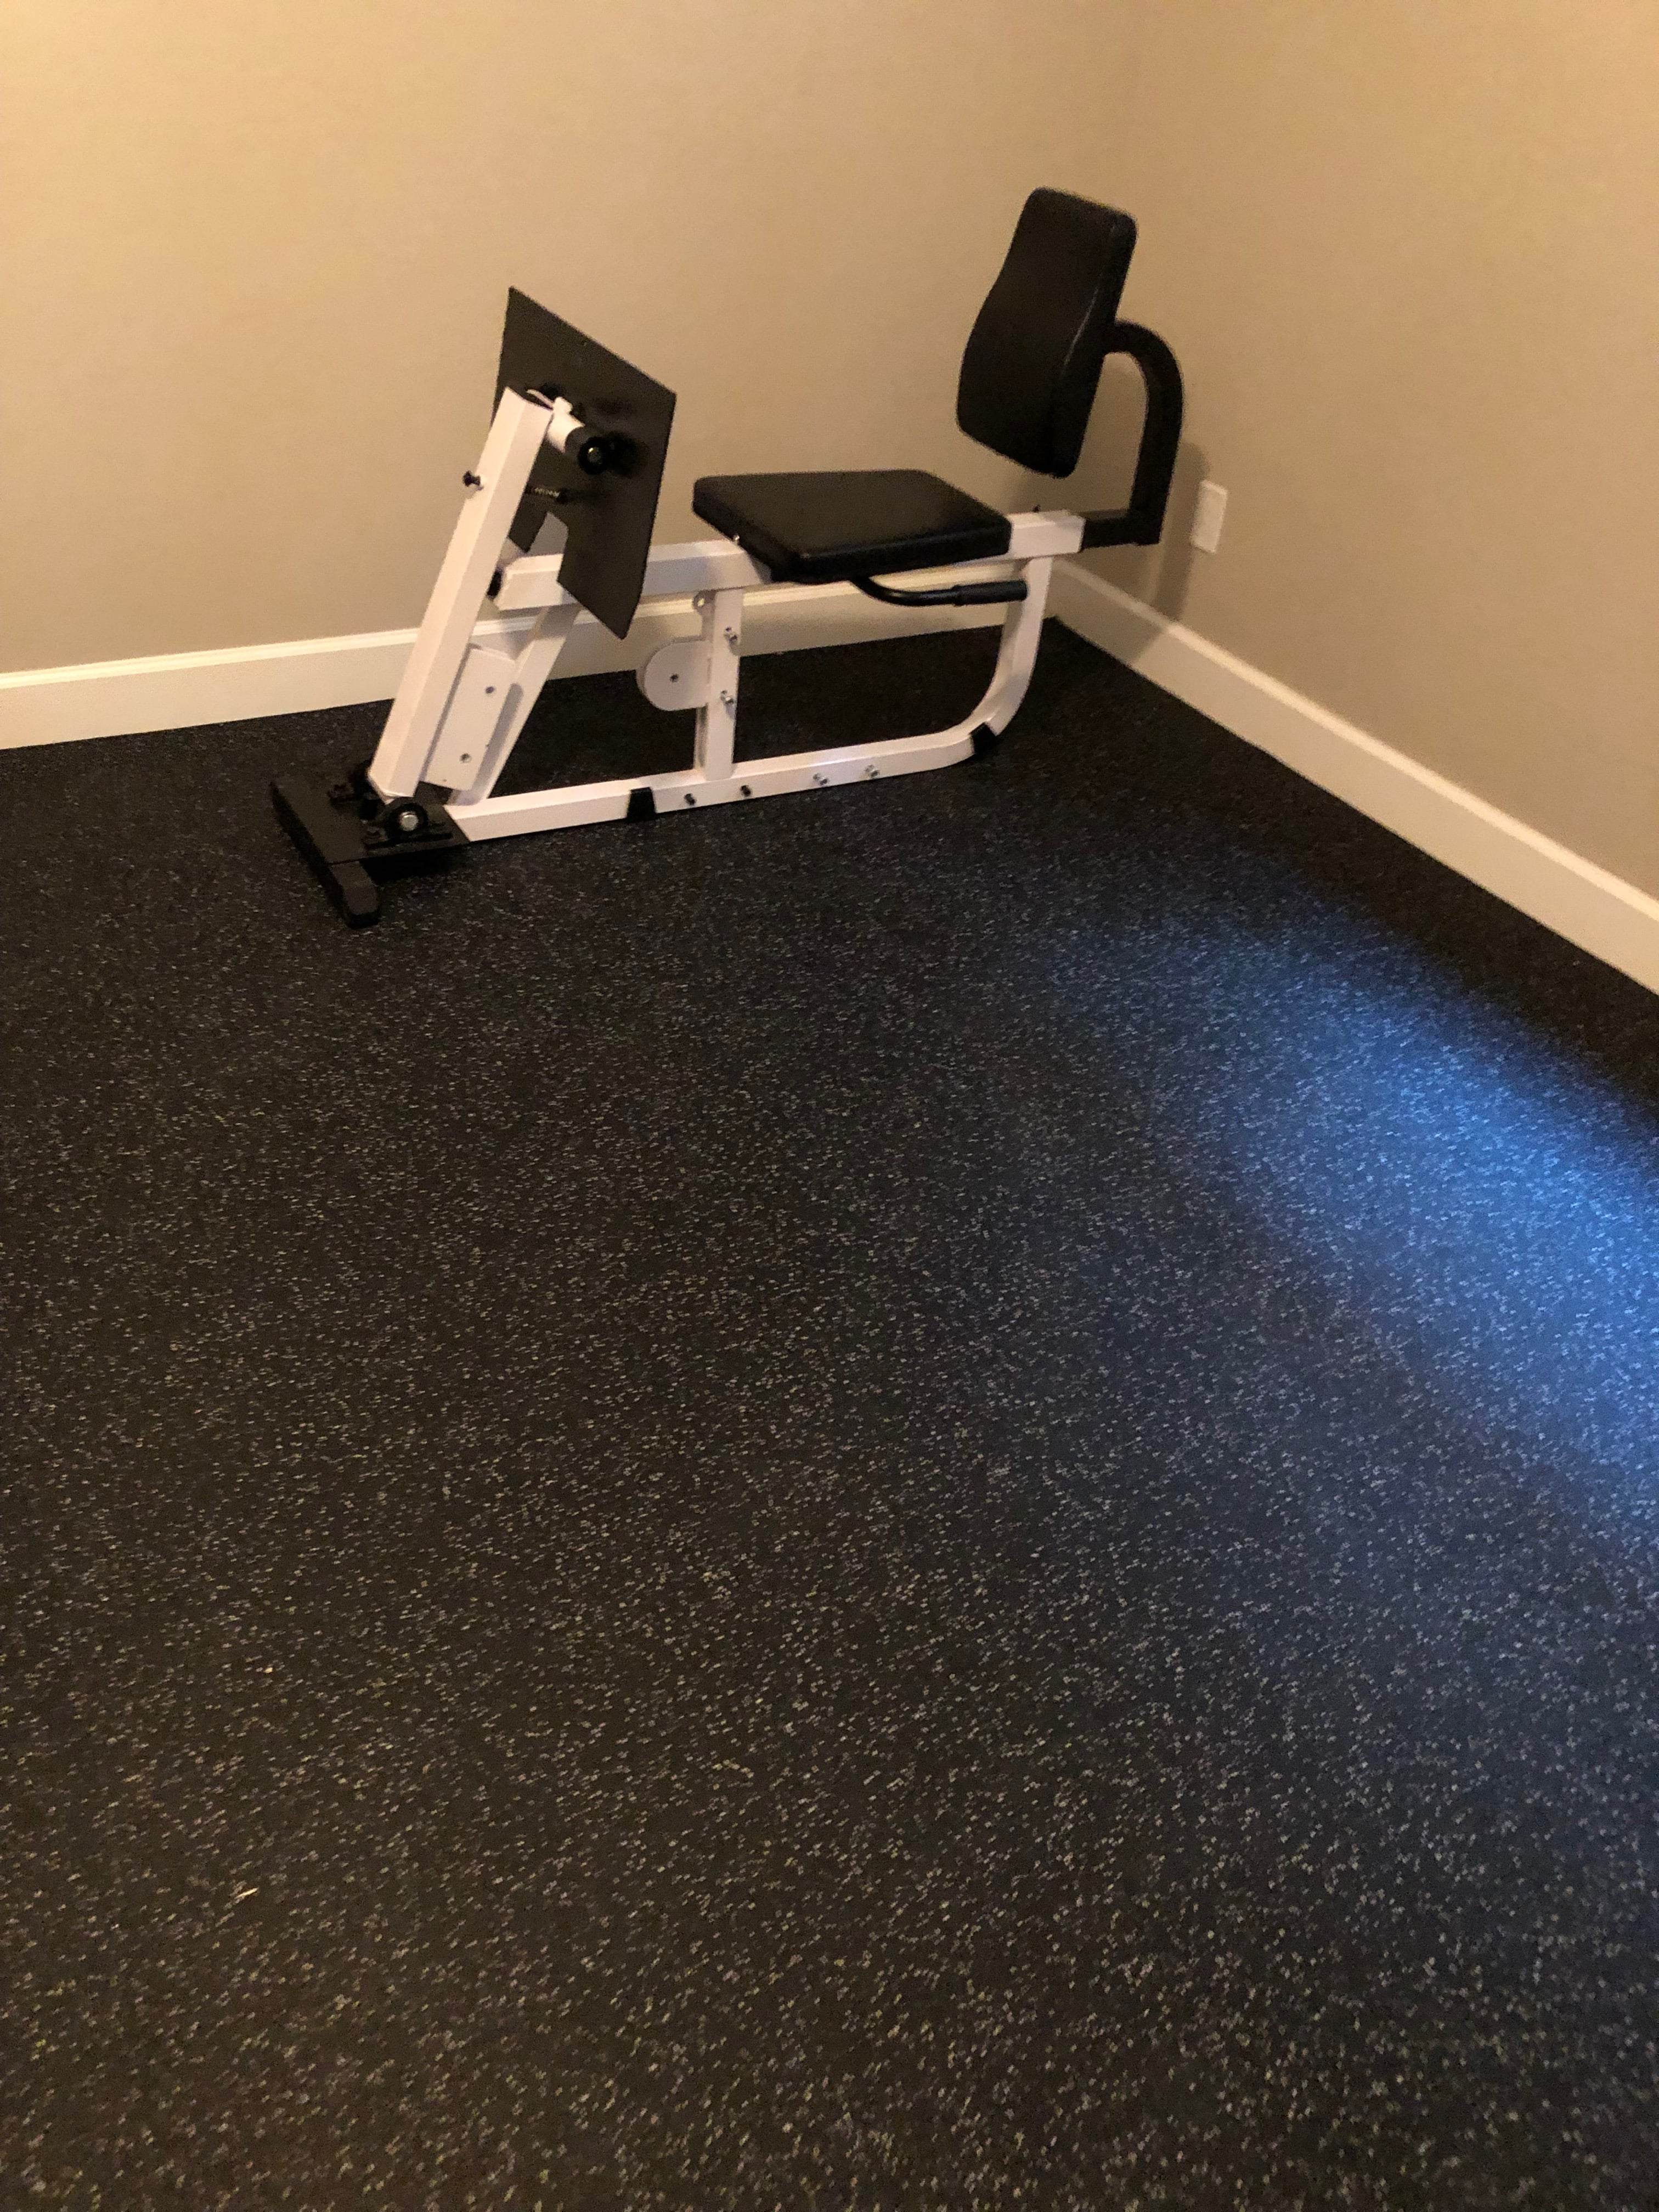 Rubber Flooring For A Workout Room